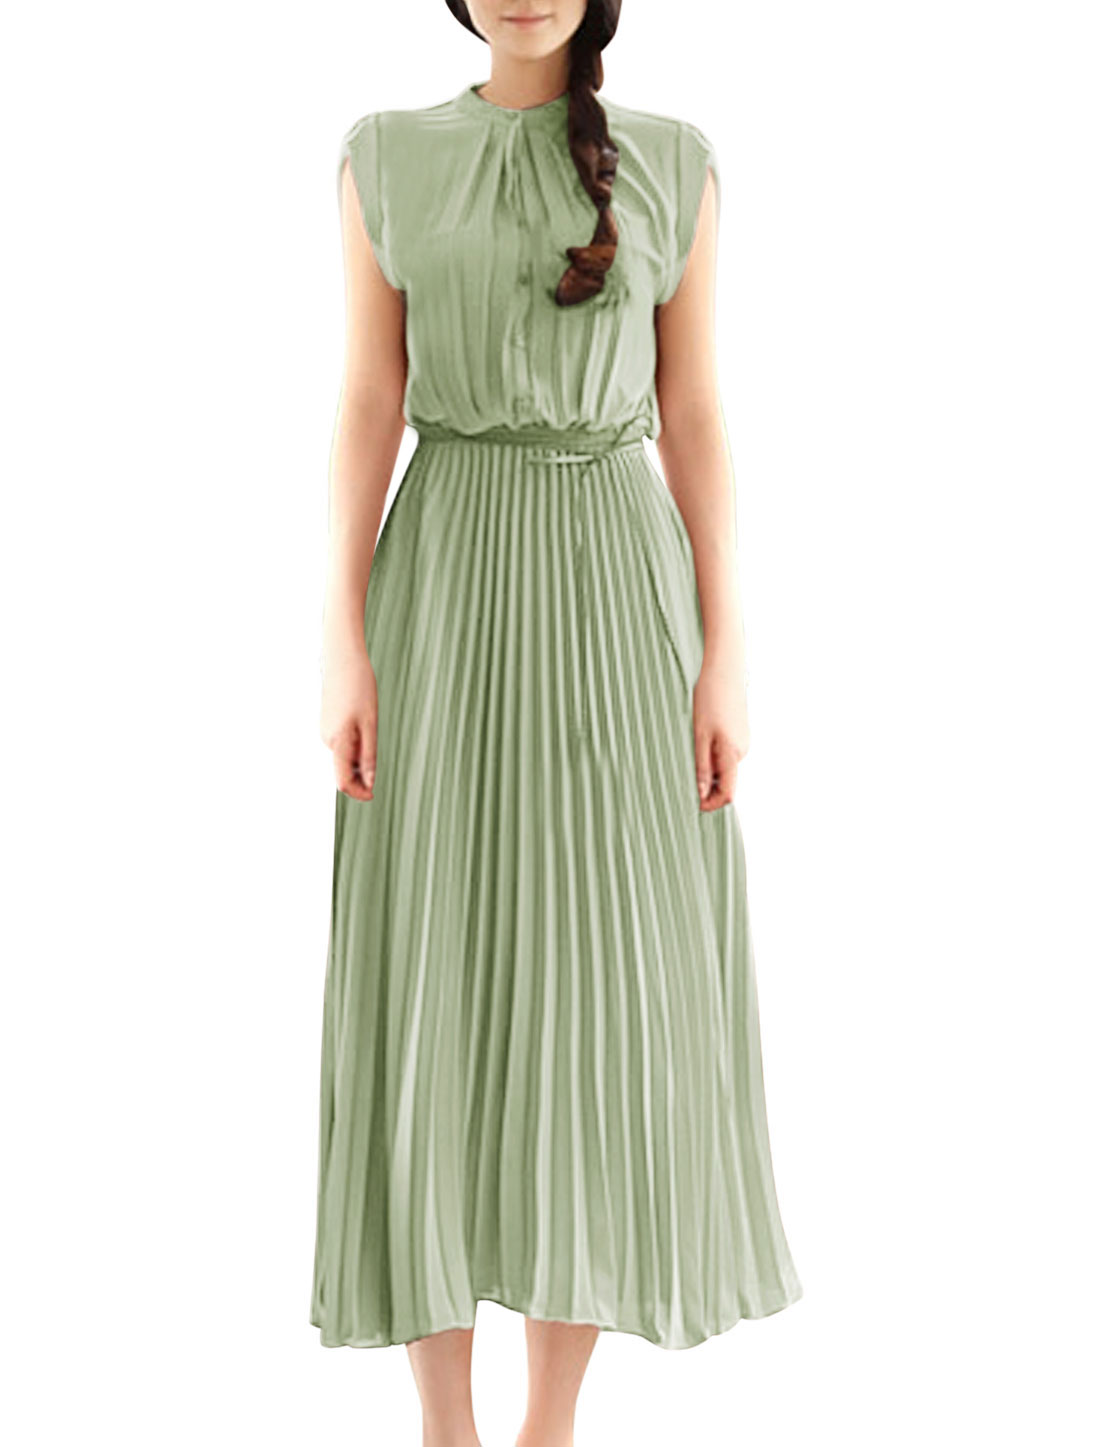 Women Stand Collar Cap Sleeves Unlined Pleated Dress Light Green S